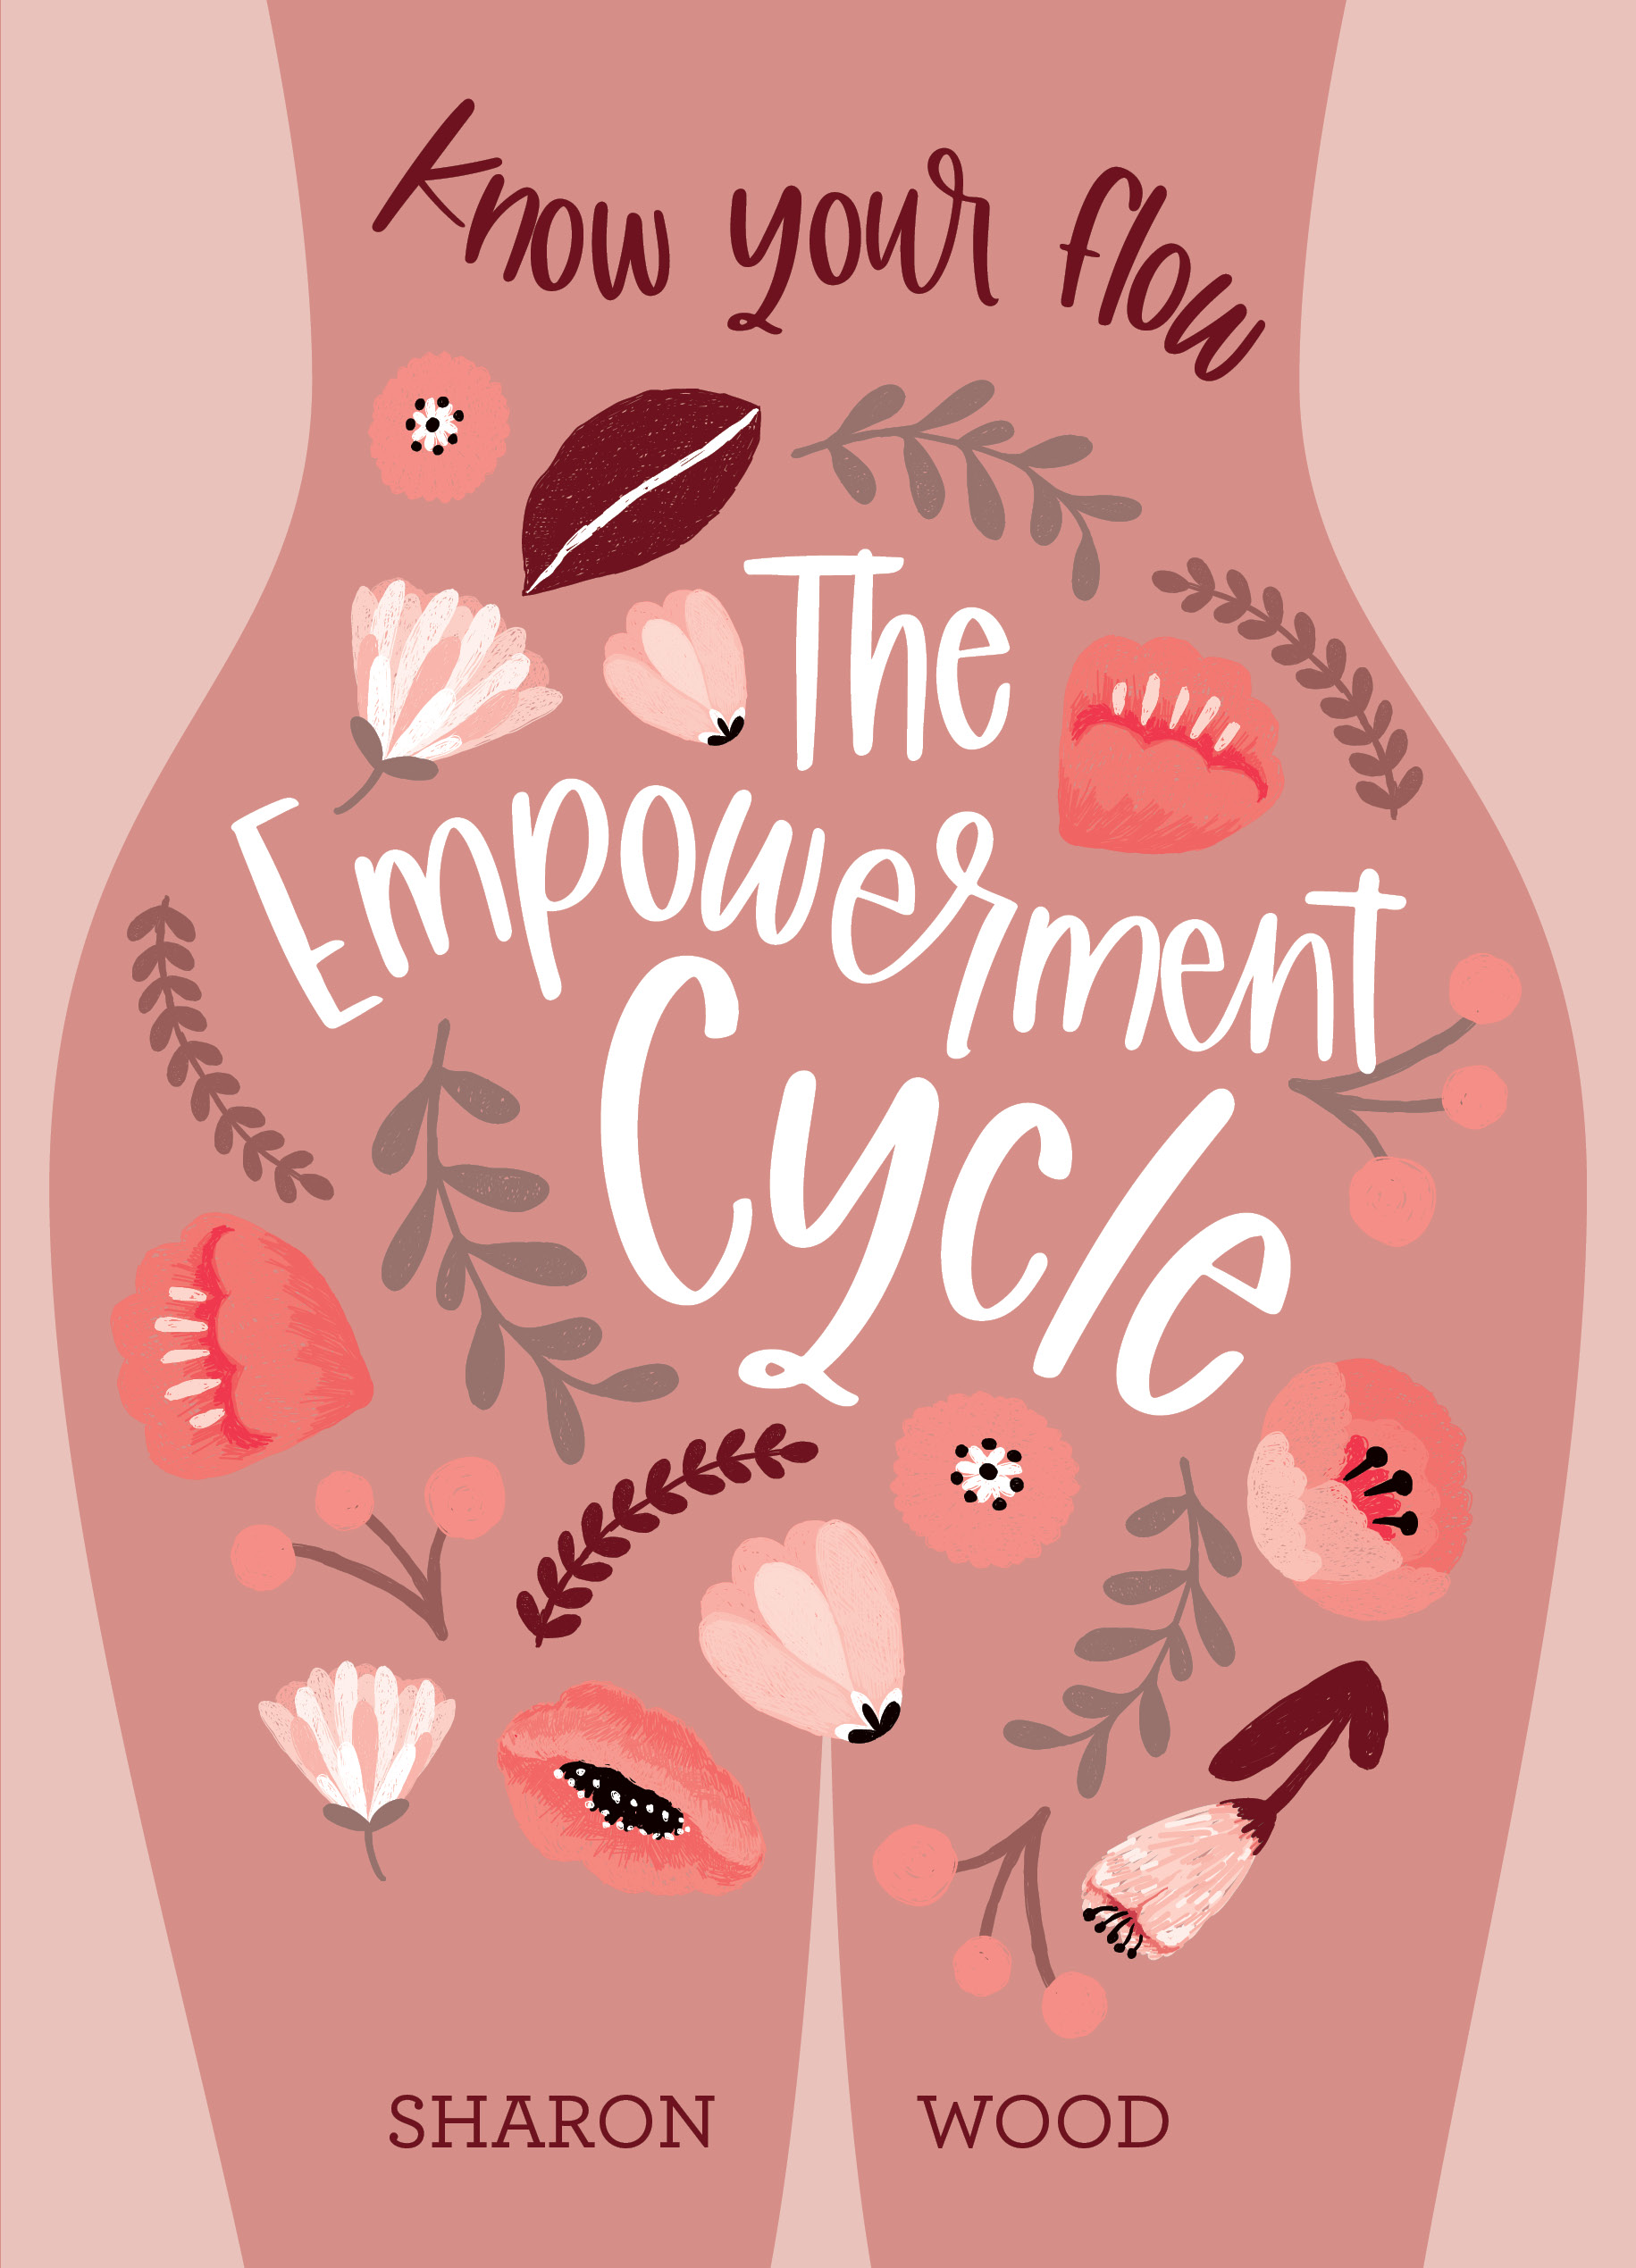 The Empowerment Cycle